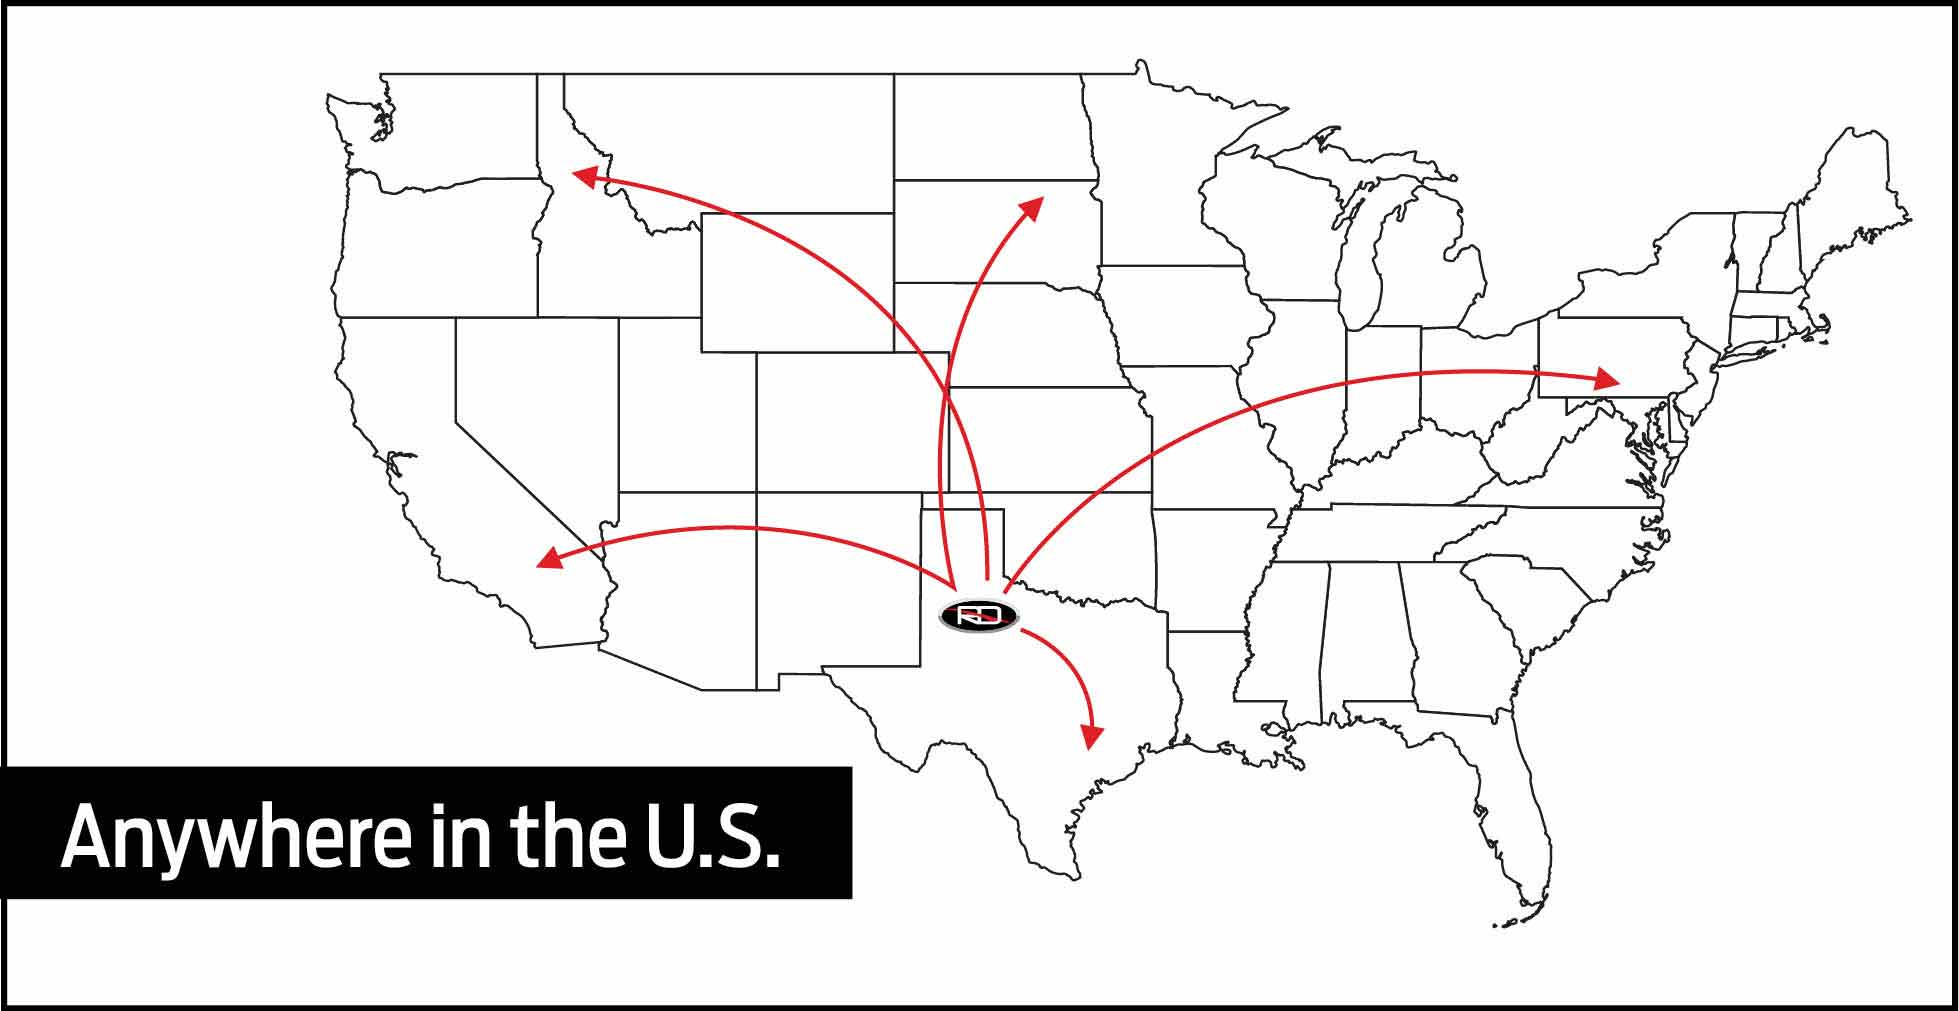 We provide Doorstep Delivery Dallas and Any where in the US. The image includes a US map marking all the area Reagor Dykes Auto Group delivers vehicles to